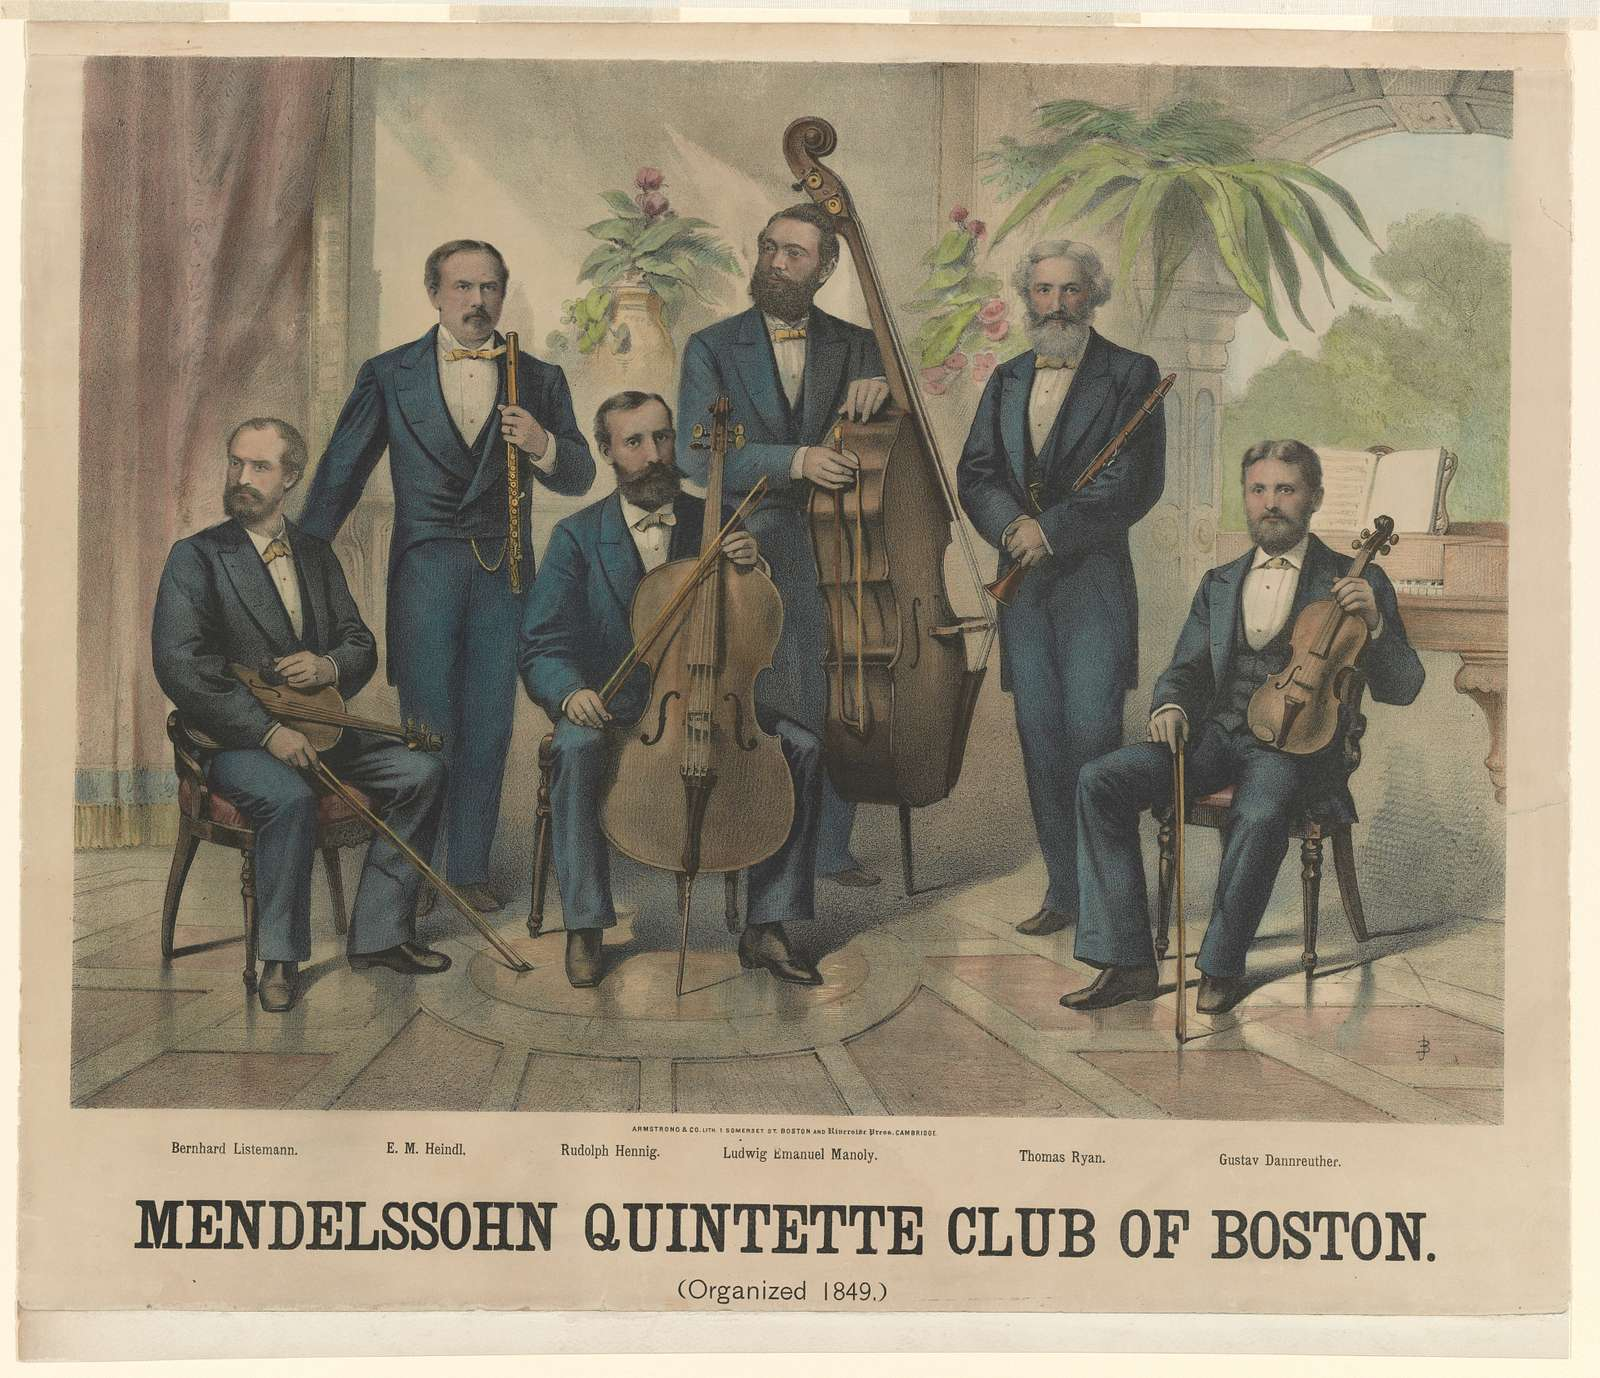 Mendelssohn Quintette Club of Boston (organized 1849) / Armstrong & Co. Lith. 1 Somerset St. Boston and Riverside Press, Cambridge.